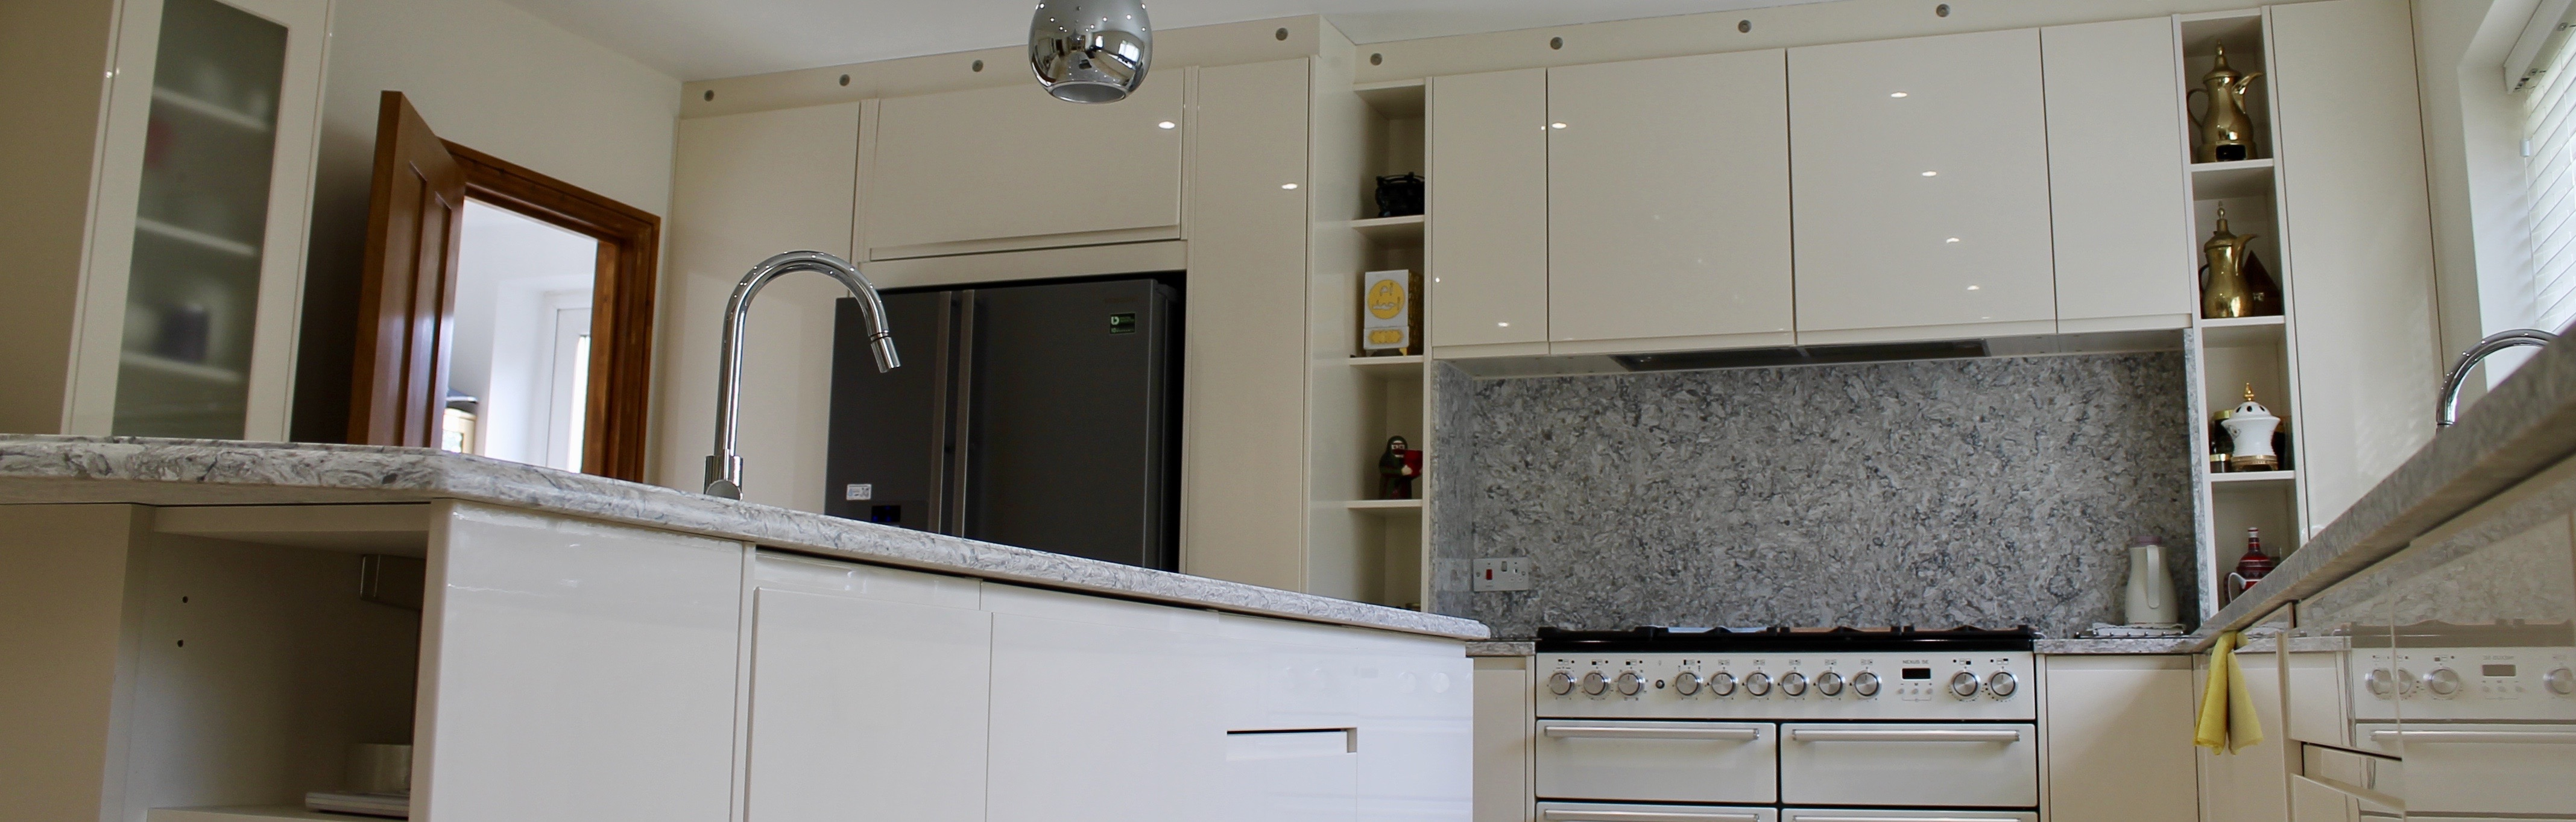 West london kitchen refurb